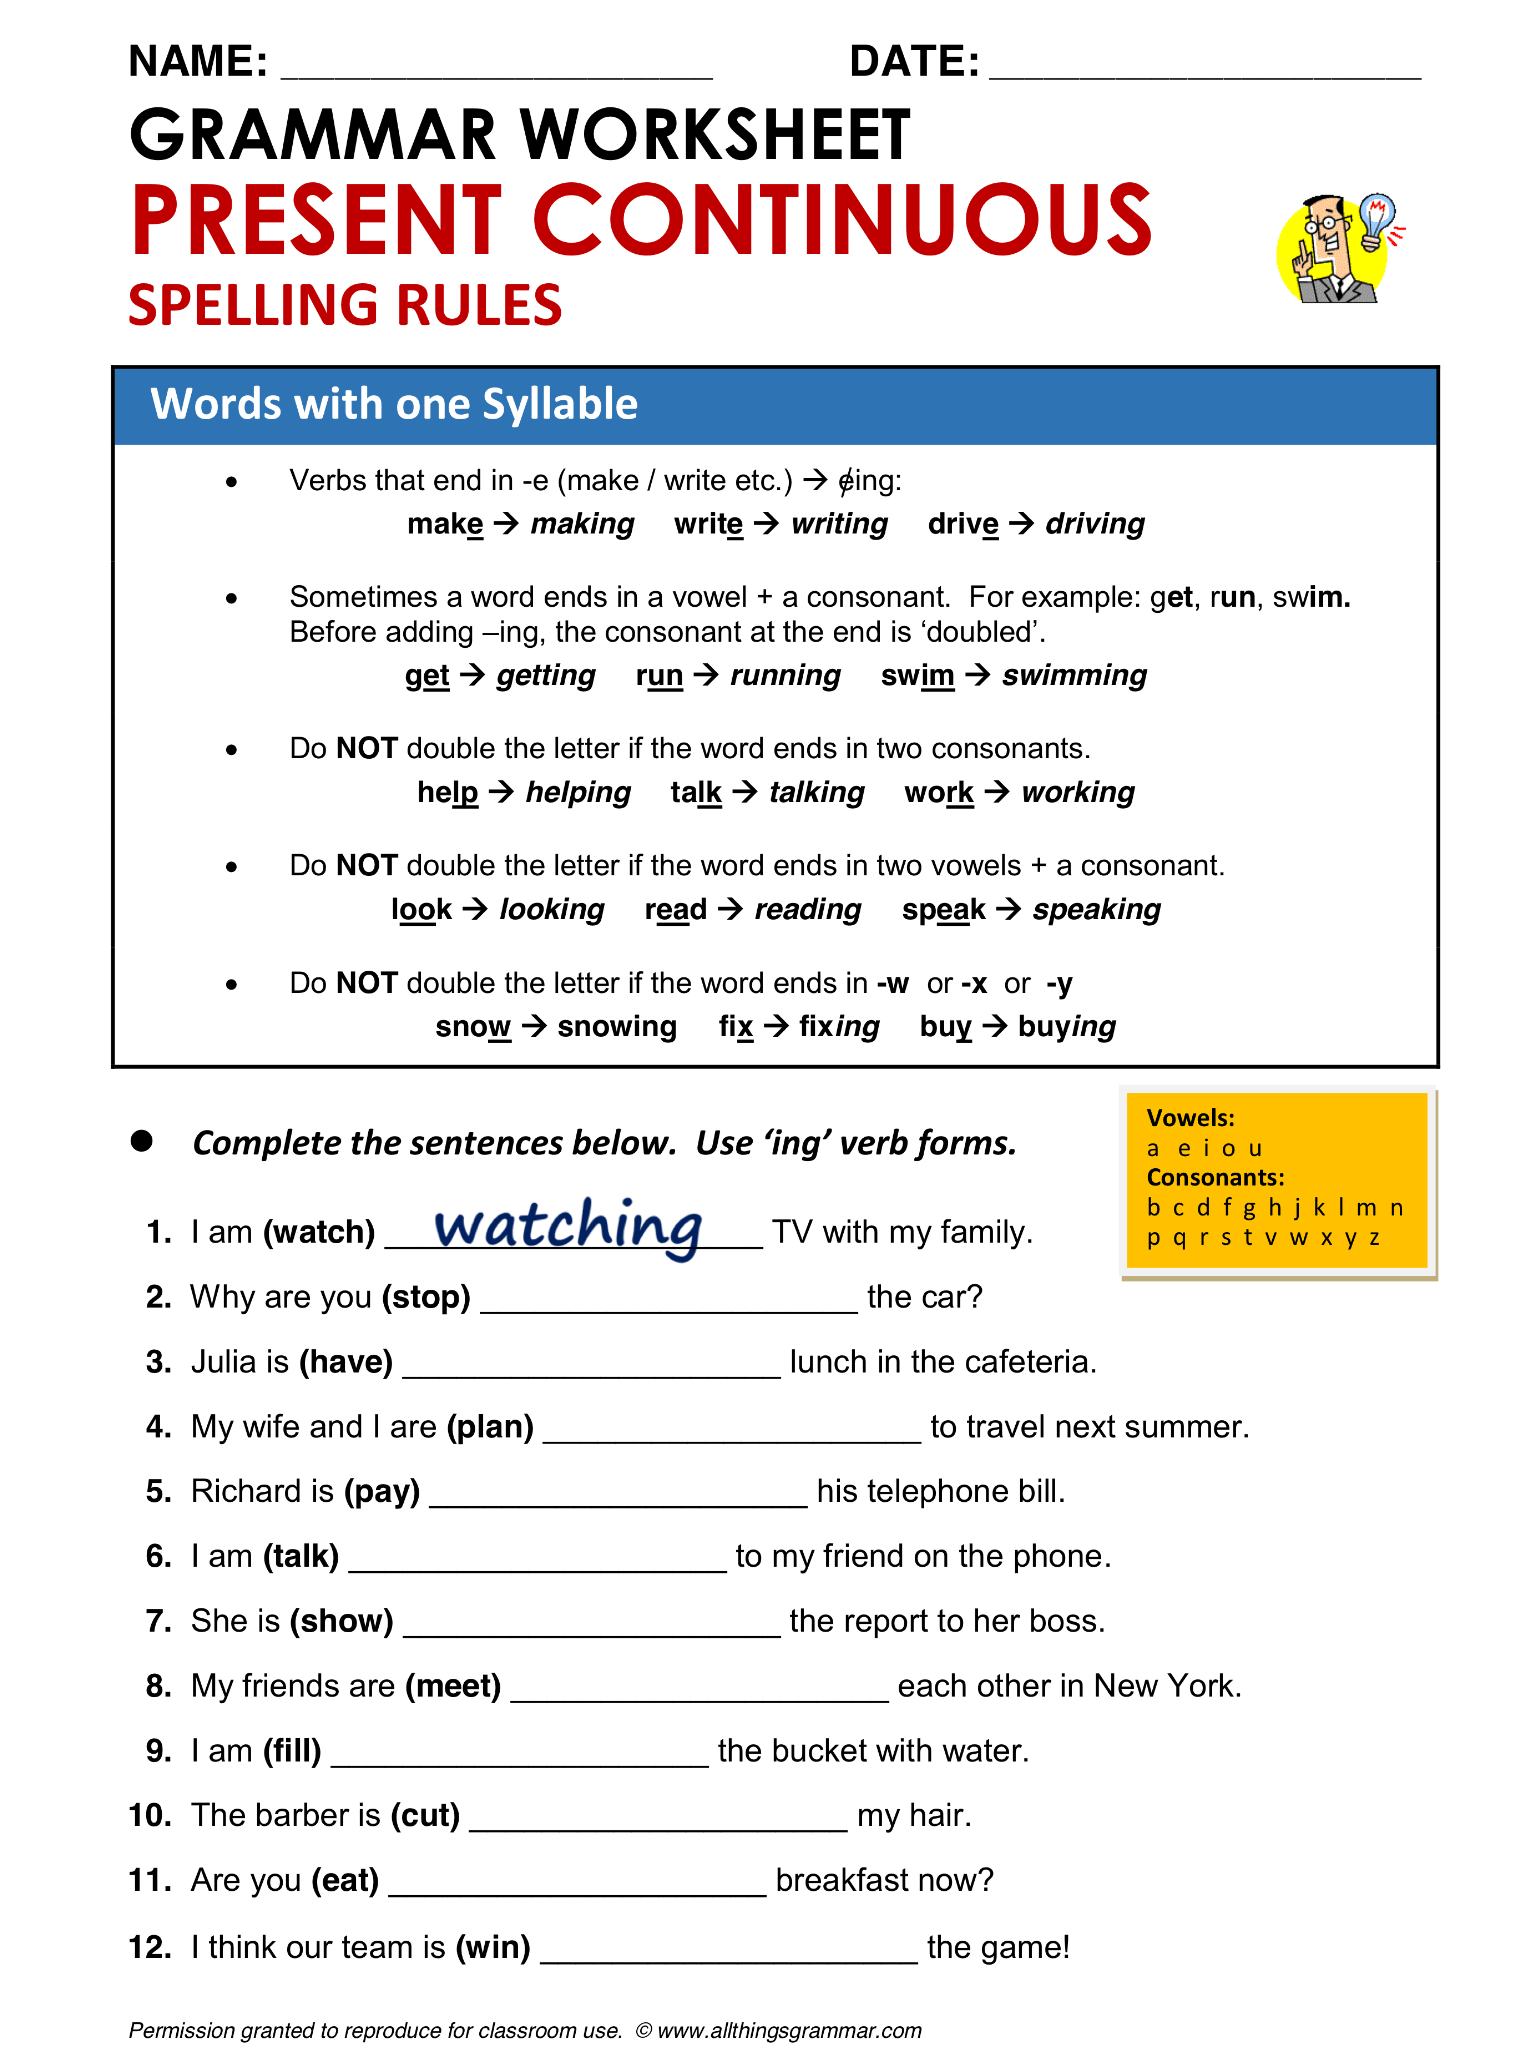 English Grammar Present Continuous Spelling Rules Words With One Syllable Lthingsgrammar